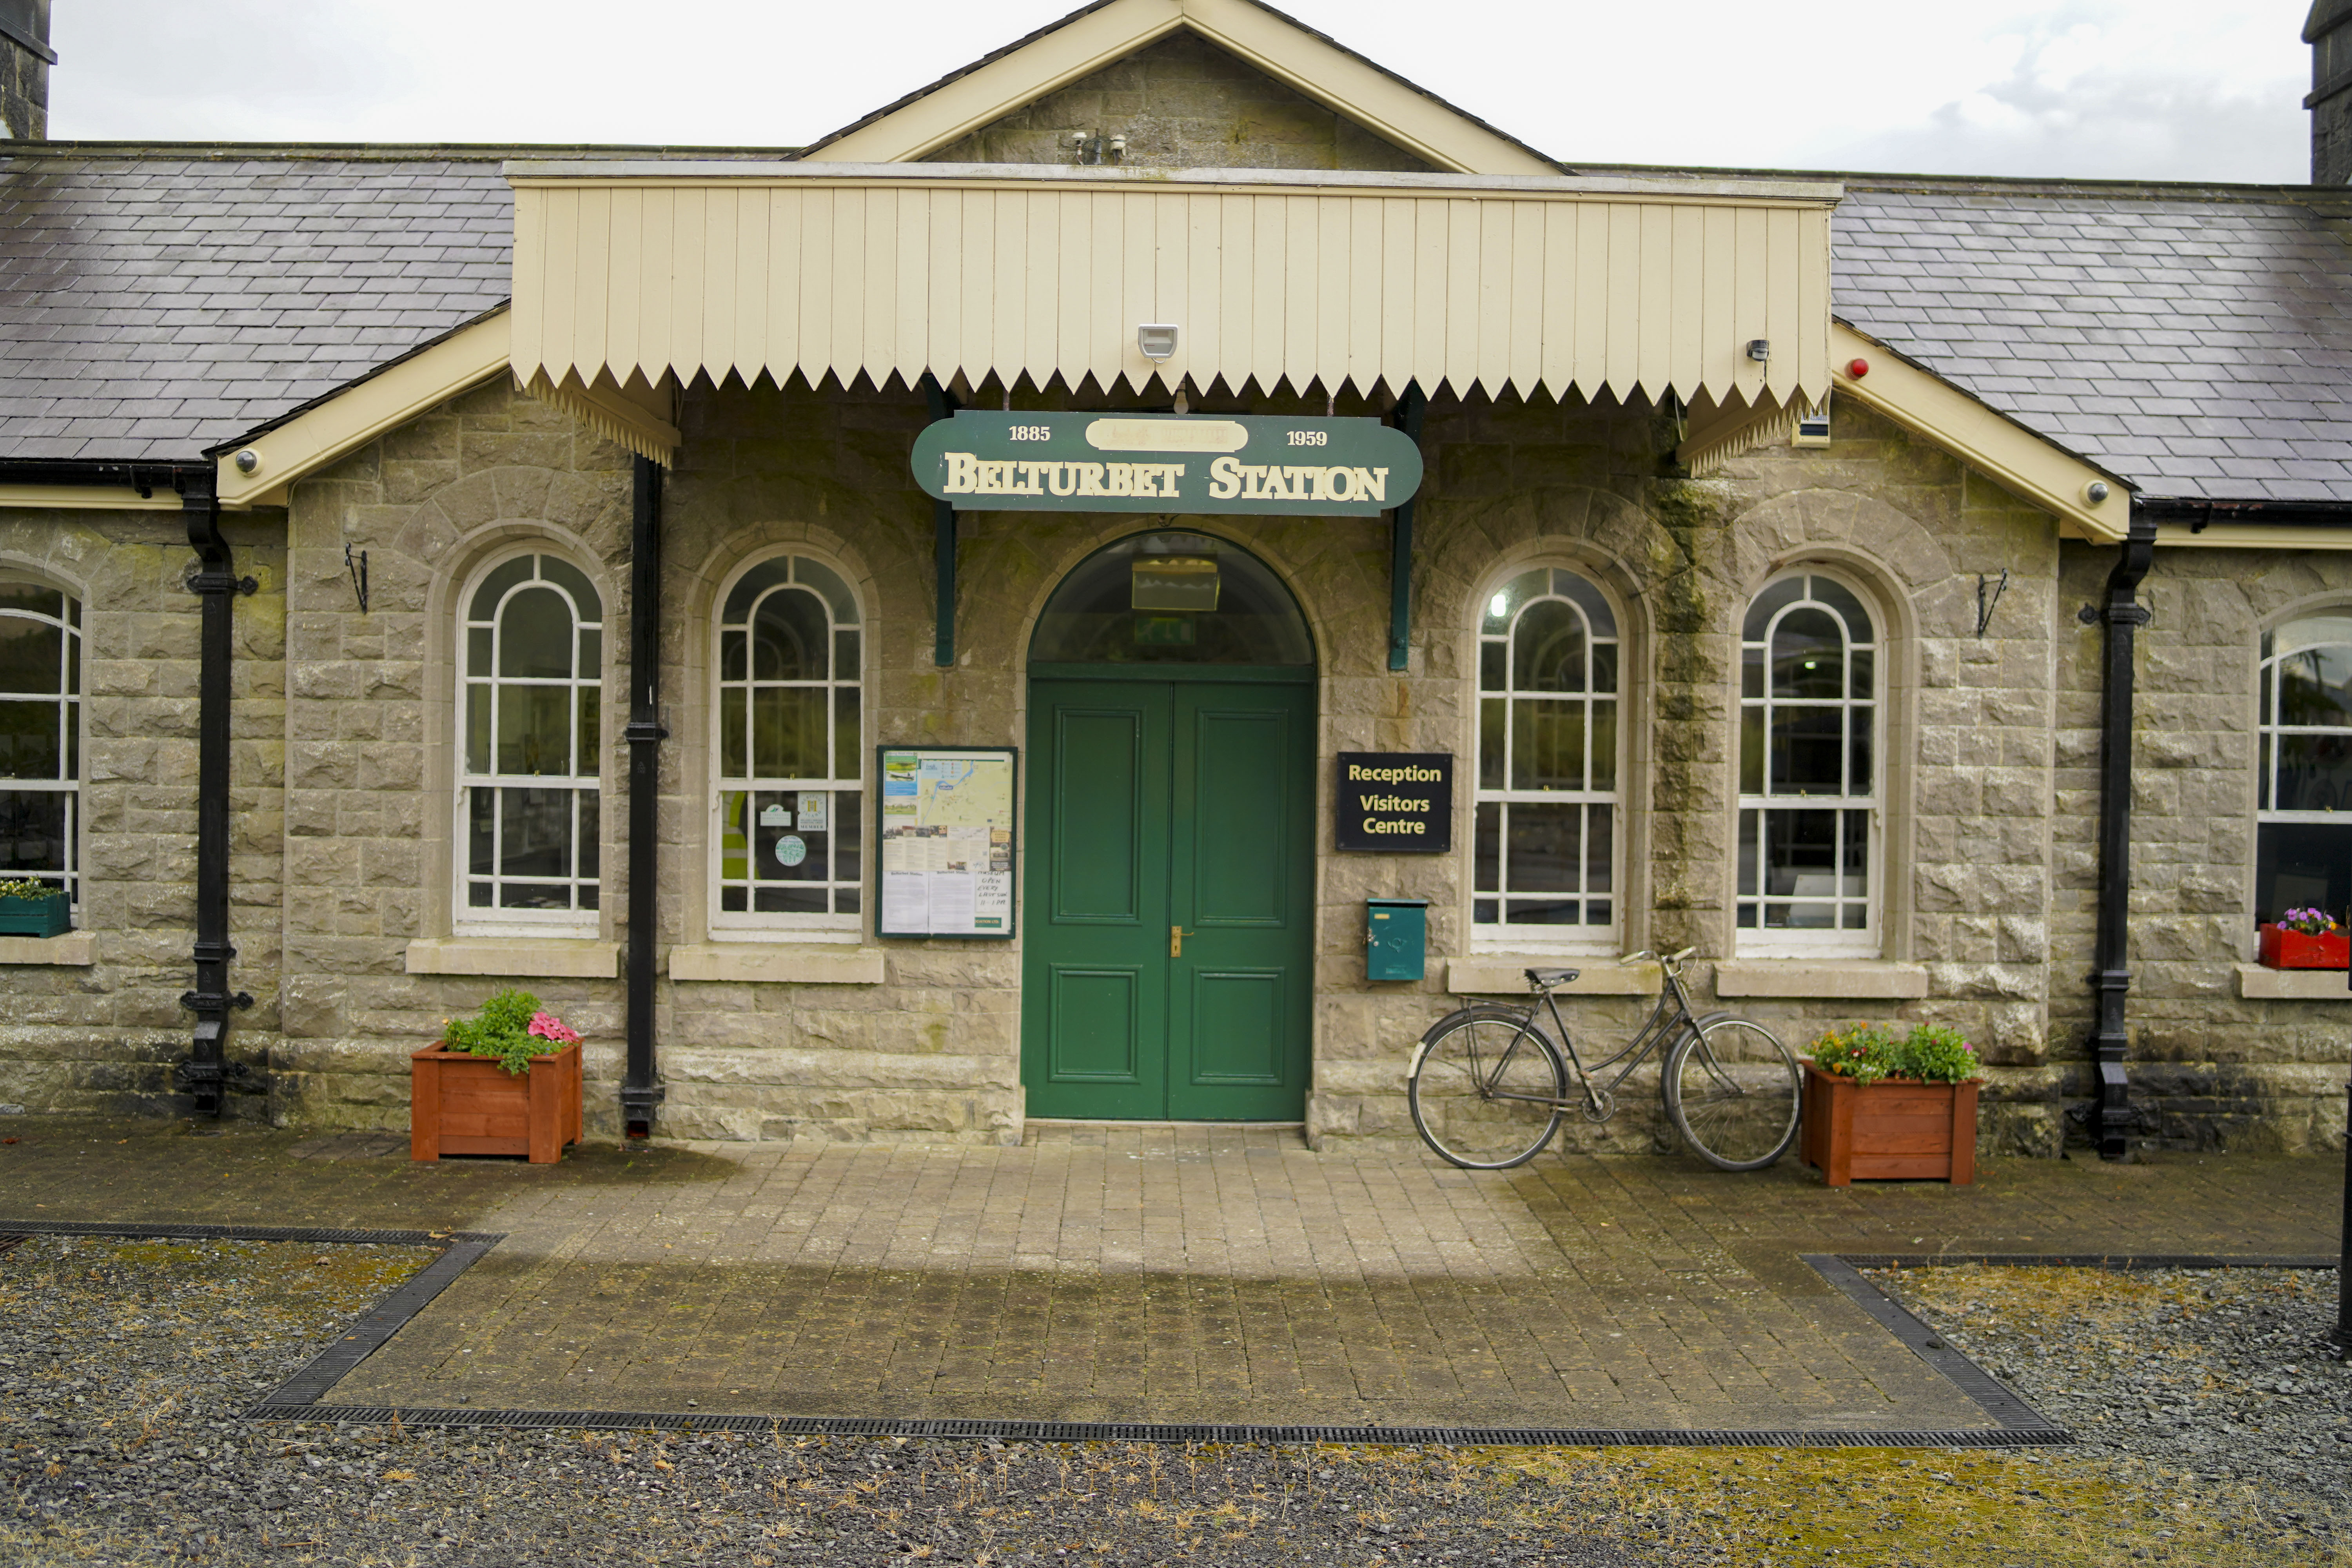 The 10 best hotels & places to stay in Belturbet - potteriespowertransmission.co.uk